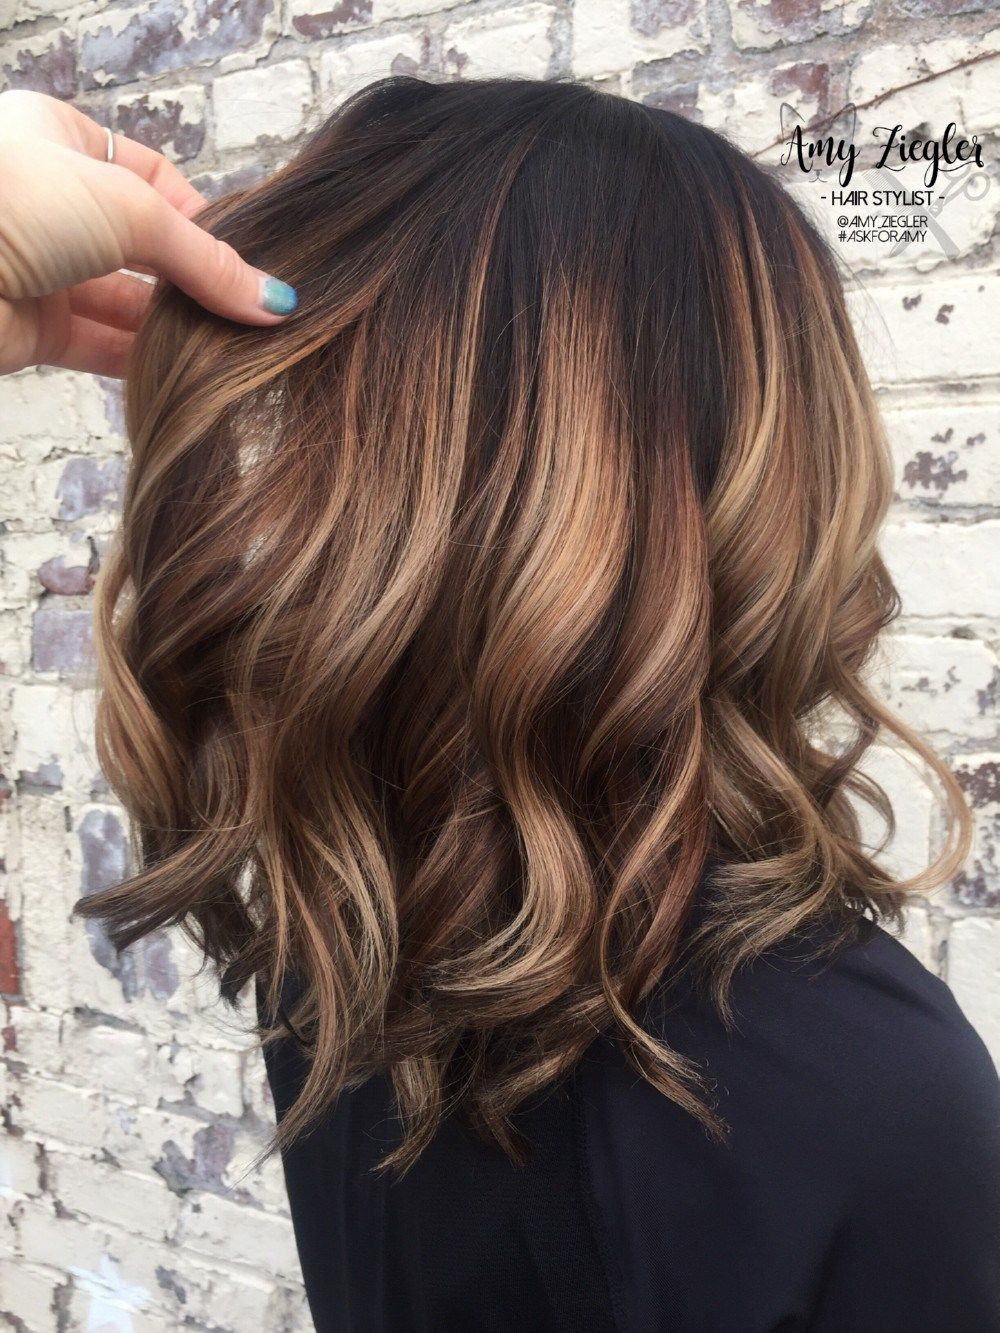 hair colour and style ideas top hair color ideas to try 2017 7 8304 | 25b3f441bab0b9edbbcb9d4363c35a6f